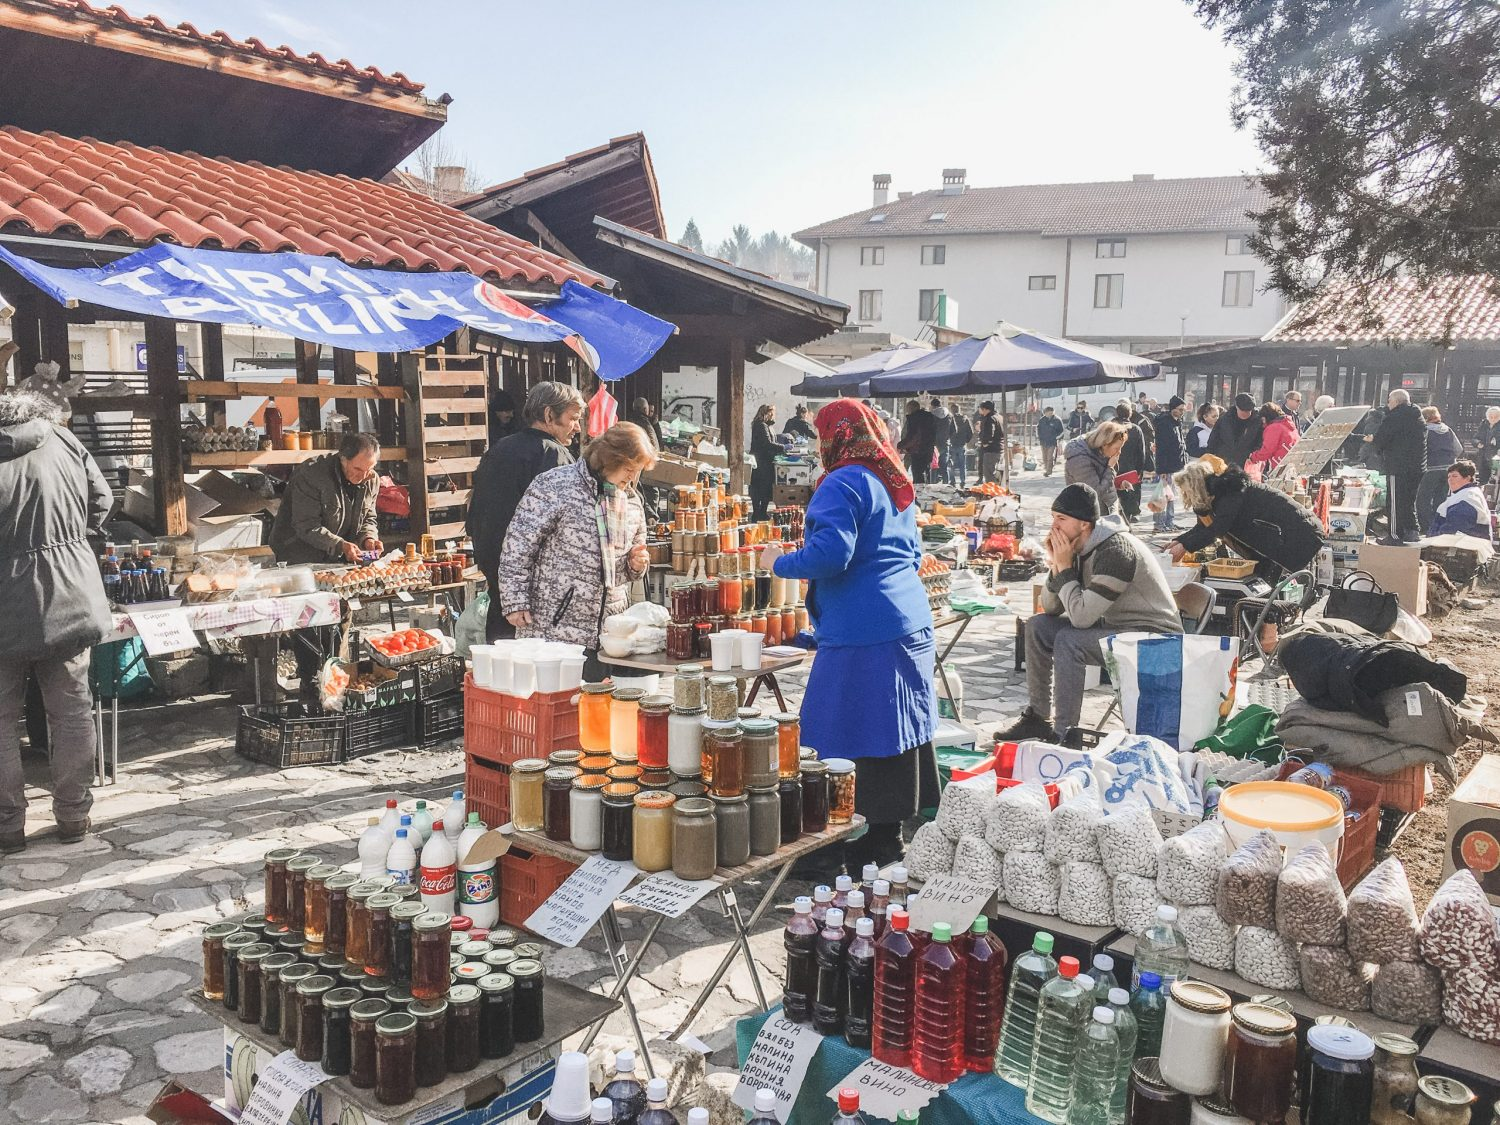 The Sunday Market in Bansko, Bulgaria